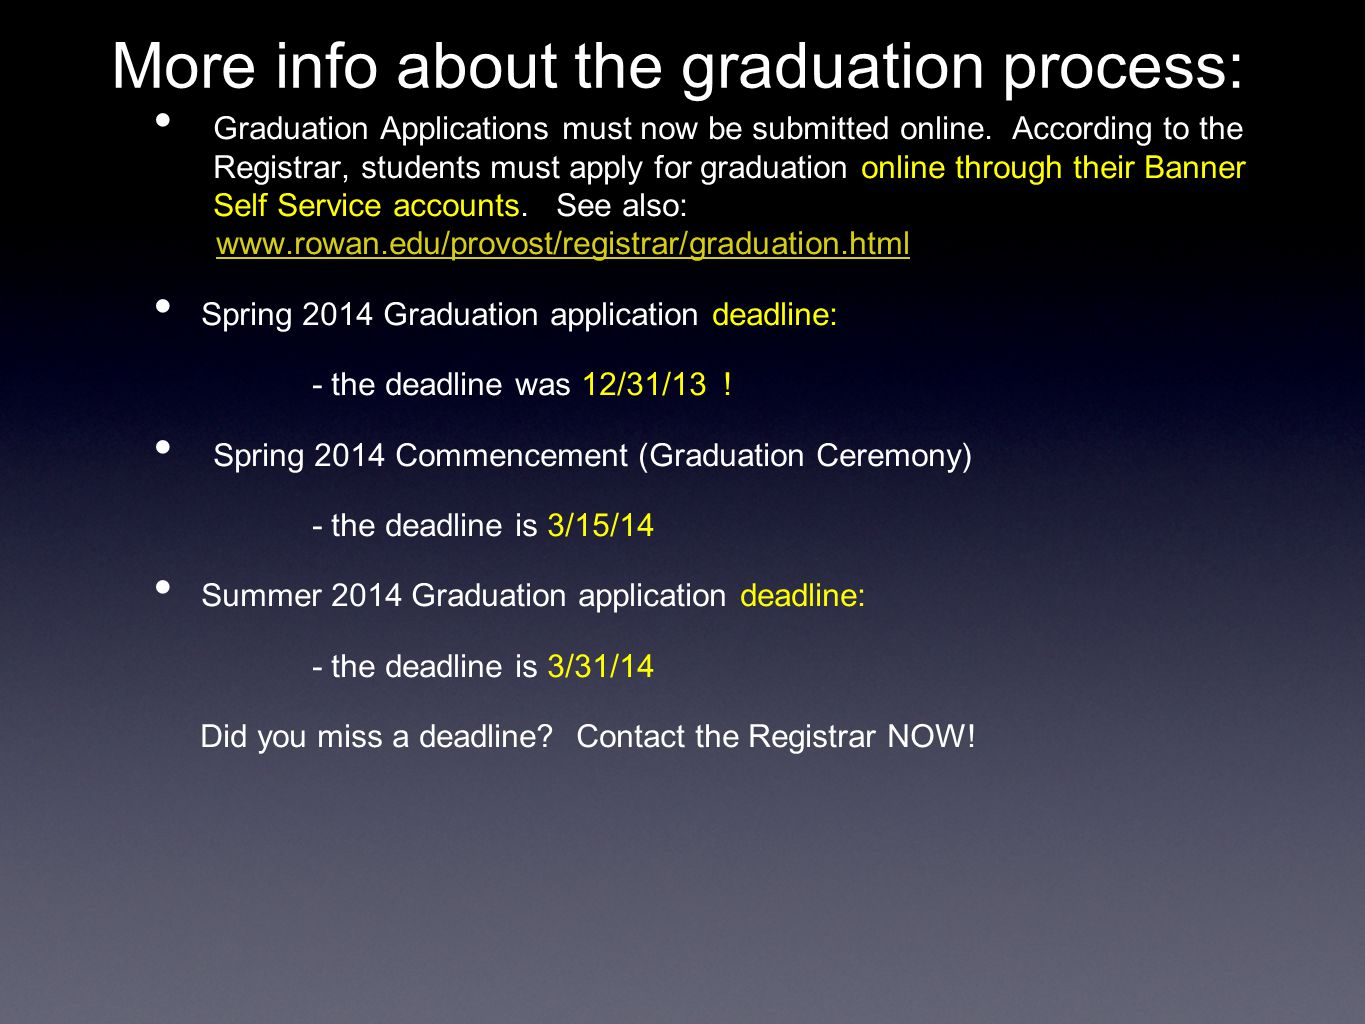 More info about the graduation process: Graduation Applications must now be submitted online. According to the Registrar, students must apply for grad